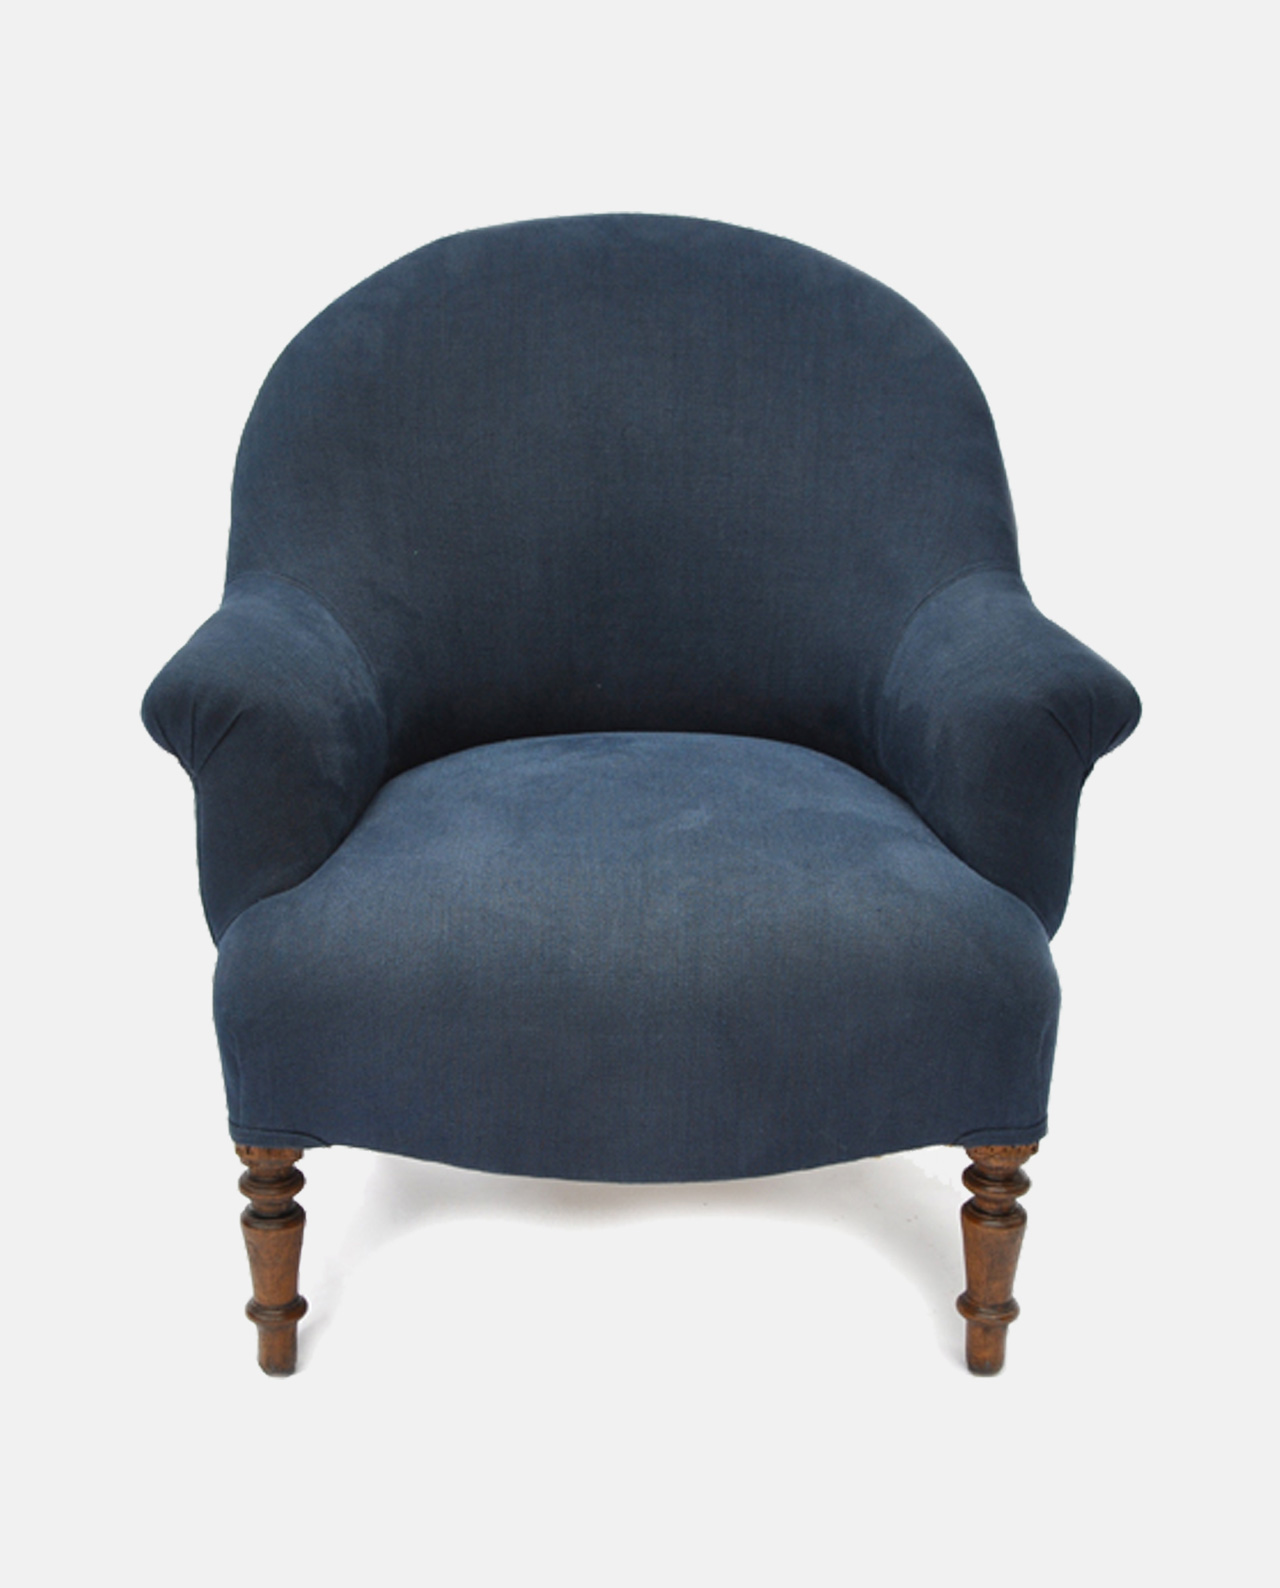 Image of vintage tub chair in Designers Guild Brera Lino linen colour  Indigo by Ines Cole